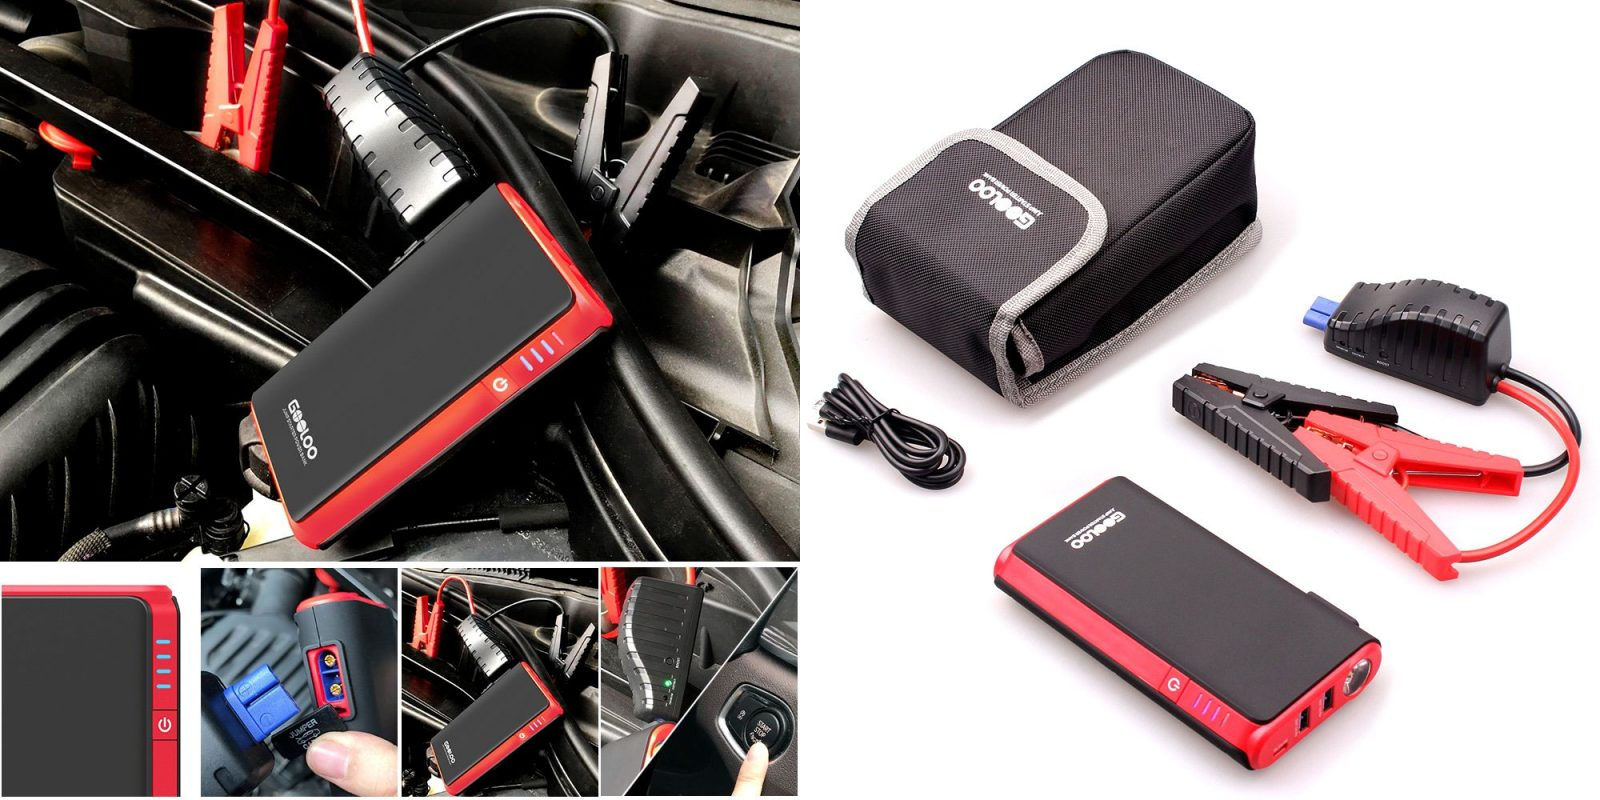 Everybody needs this 500A/10000mAh portable battery + jump starter for $30